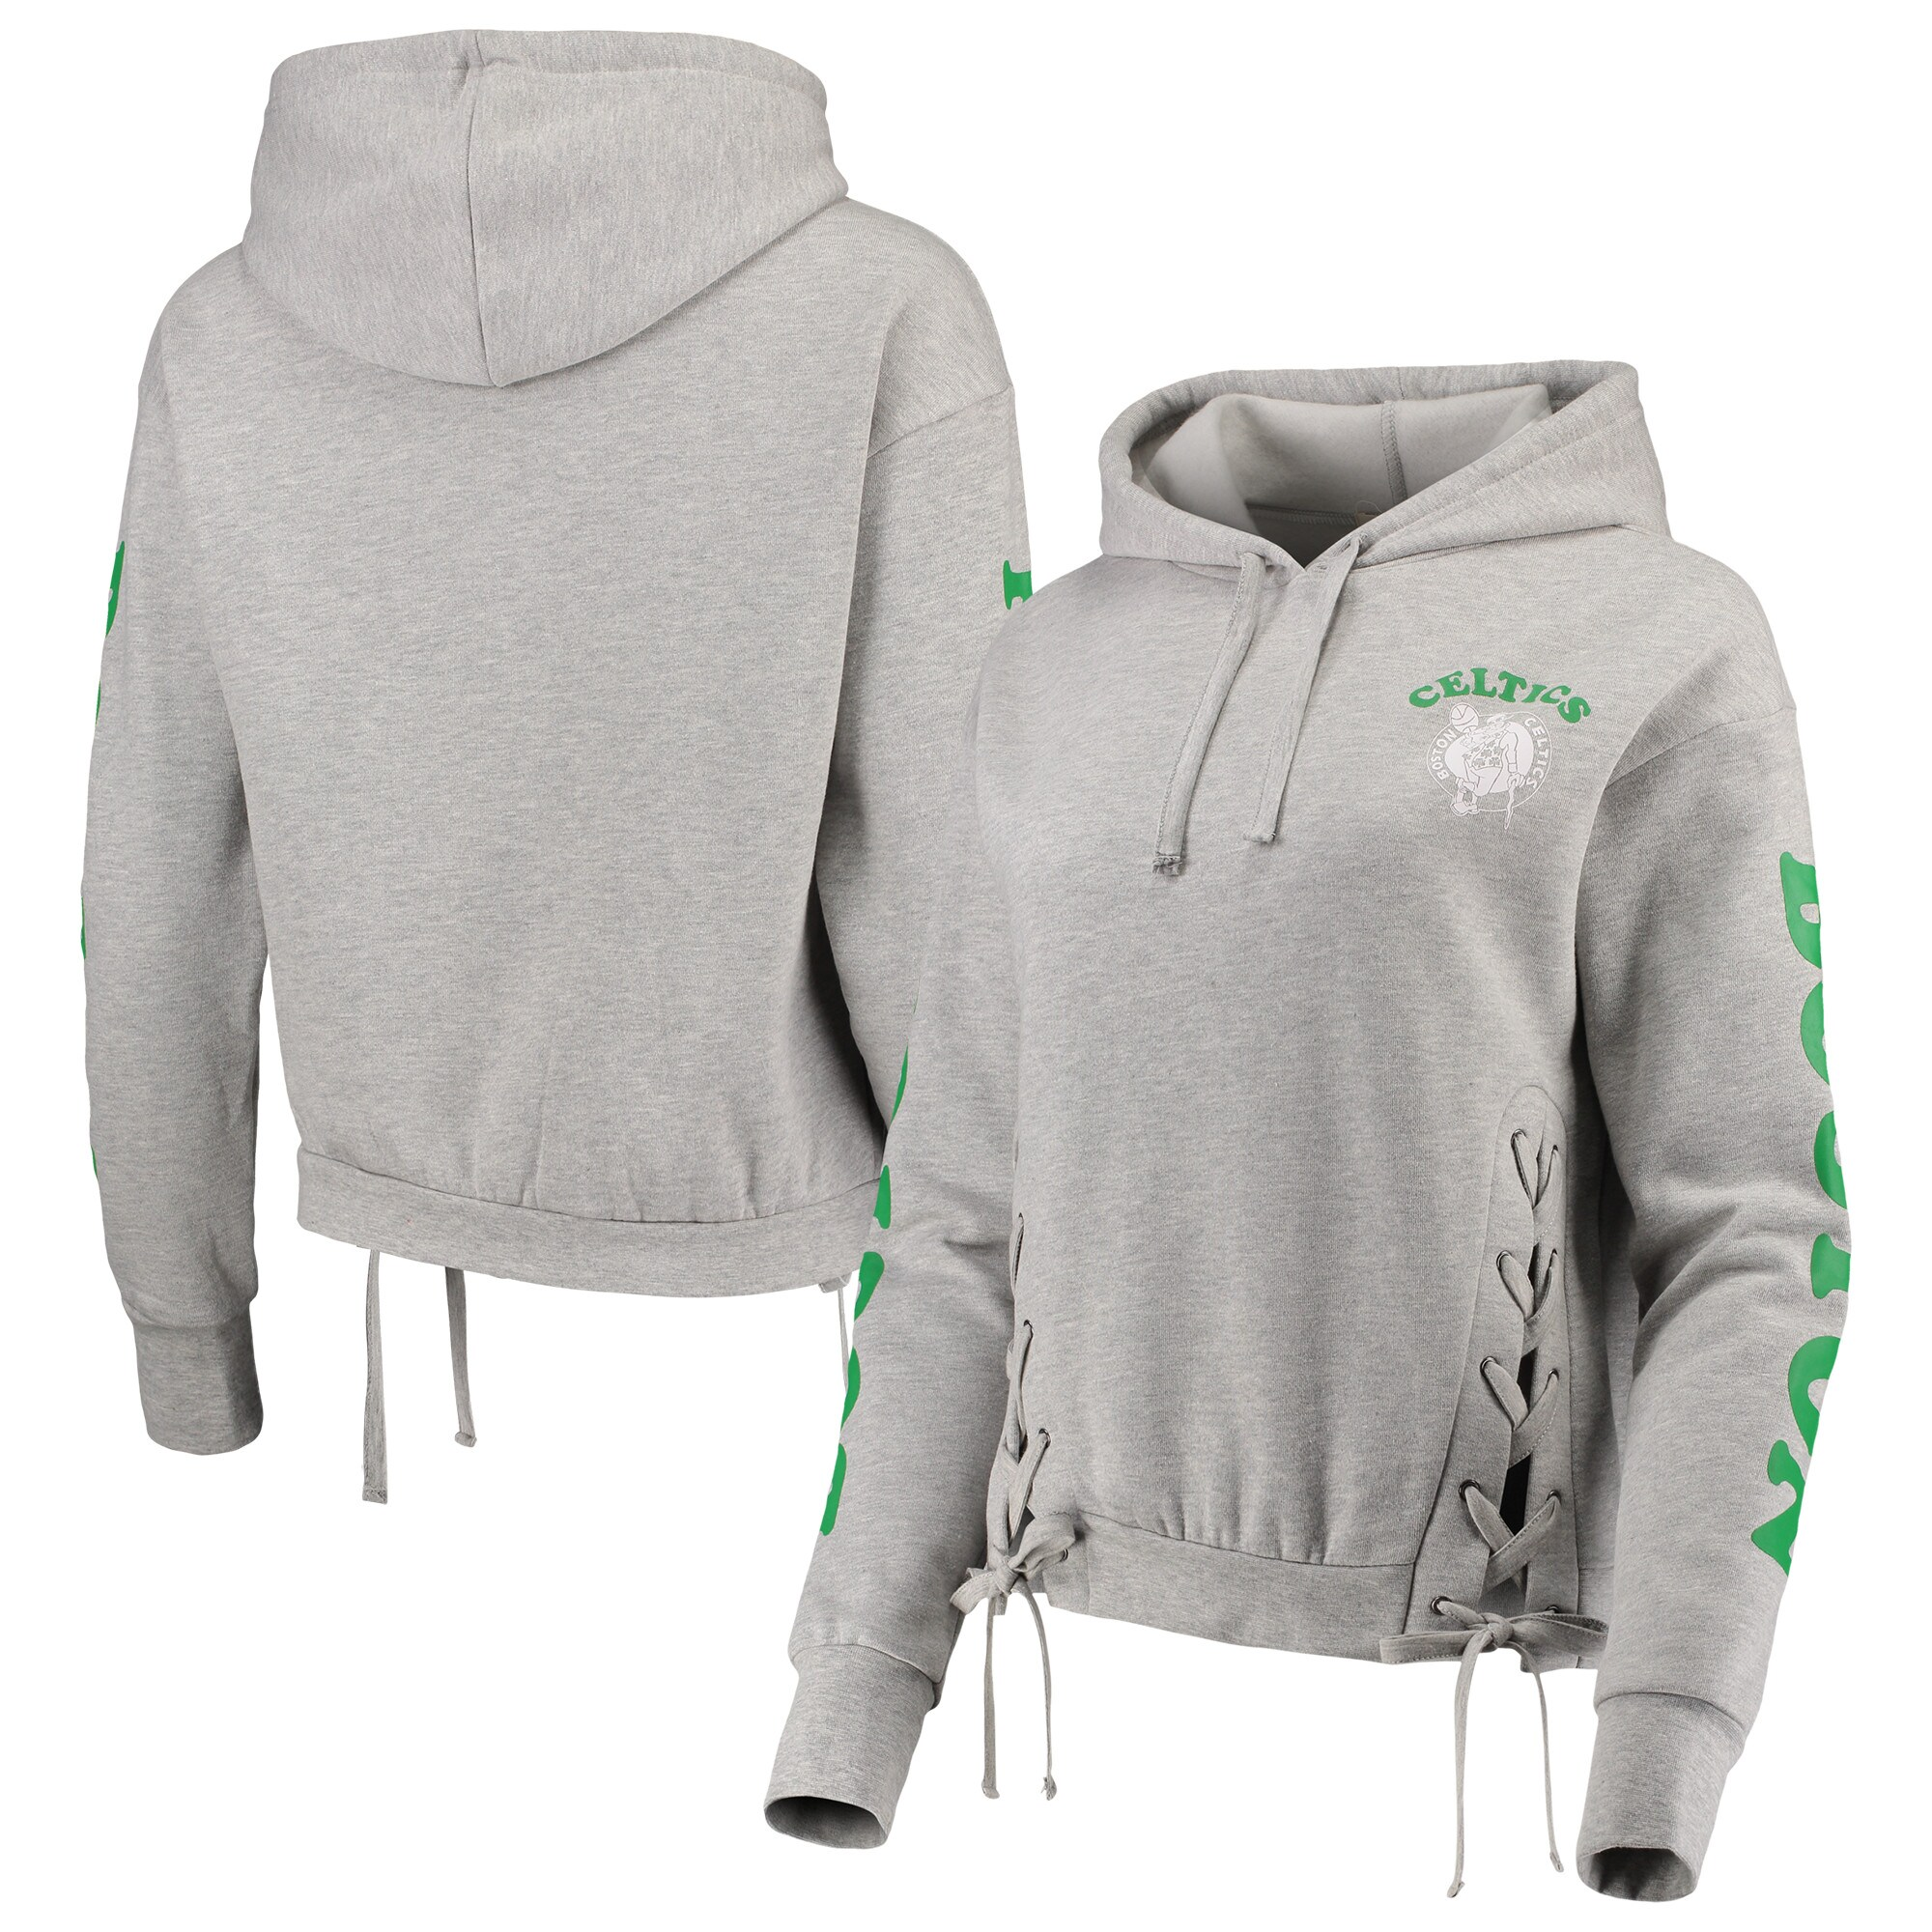 Boston Celtics Junk Food Women's Laces Pullover Hoodie - Heathered Gray